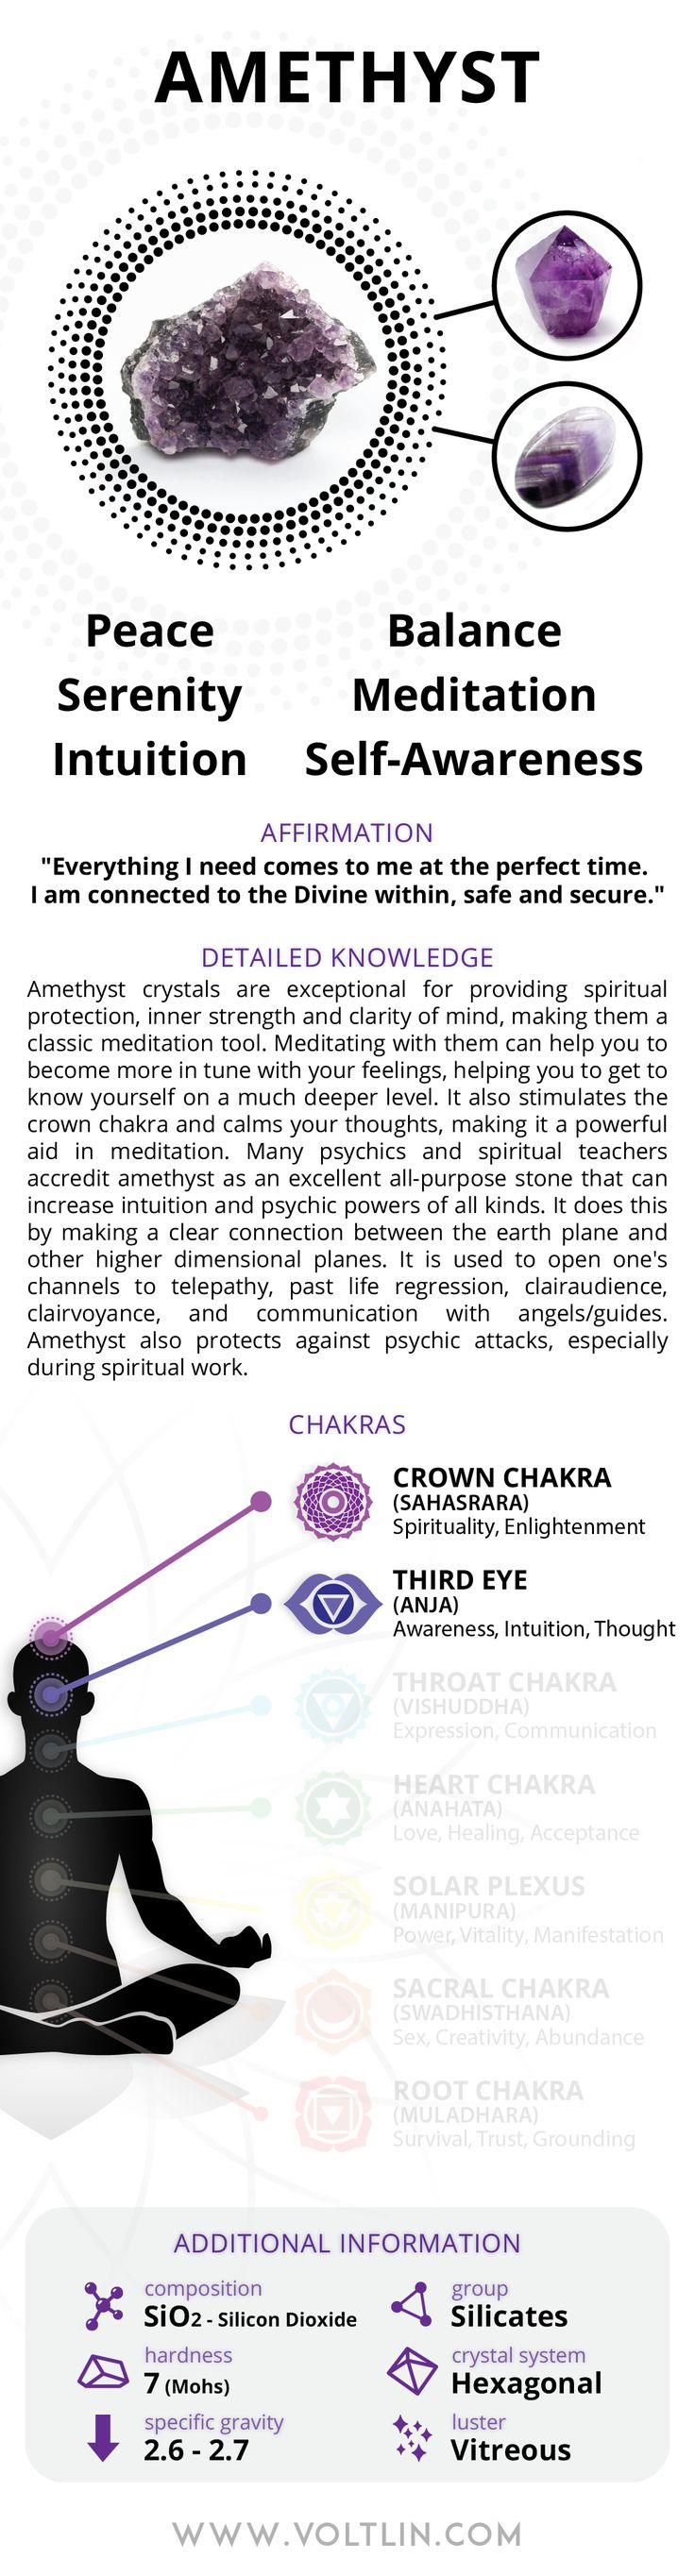 Express Shipping: 2-6 days (ships out within 1 business day) Warranty: Free repairs for up to 6 months Description Amethyst crystals are exceptional for providing spiritual protection, inner strength